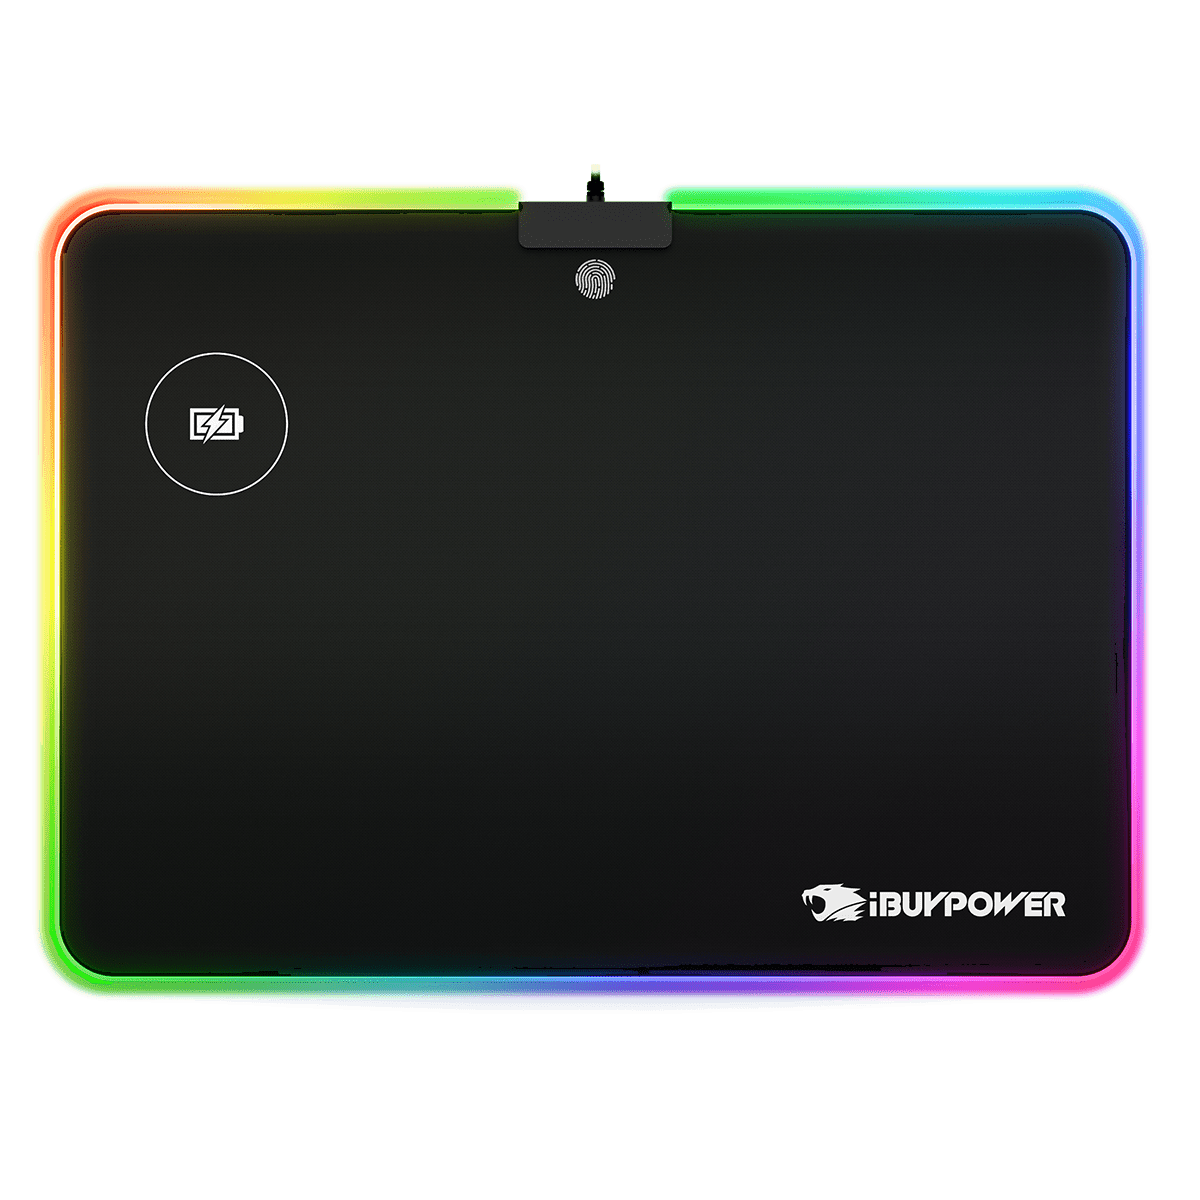 Ibuypower Rgb Qi Wireless Charging Mouse Pad Metal Hard Surface